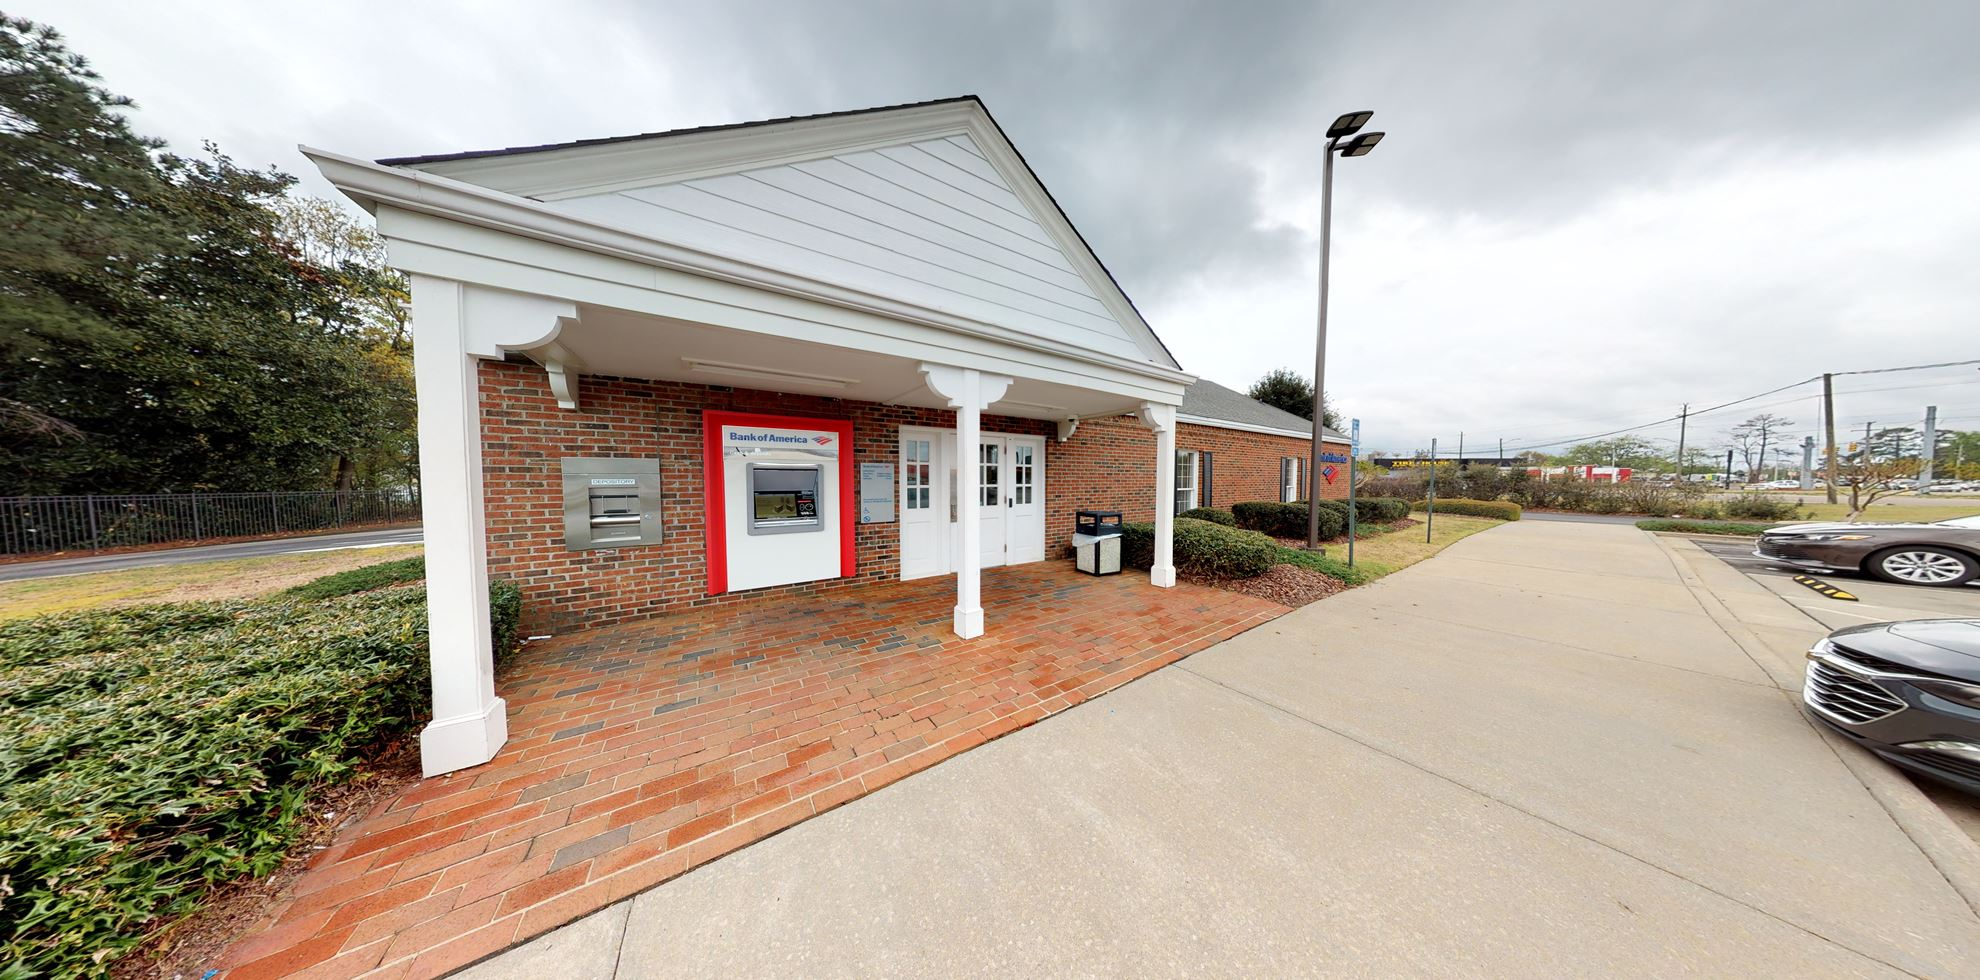 Bank of America financial center with drive-thru ATM | 4747 Cumberland Rd, Fayetteville, NC 28306